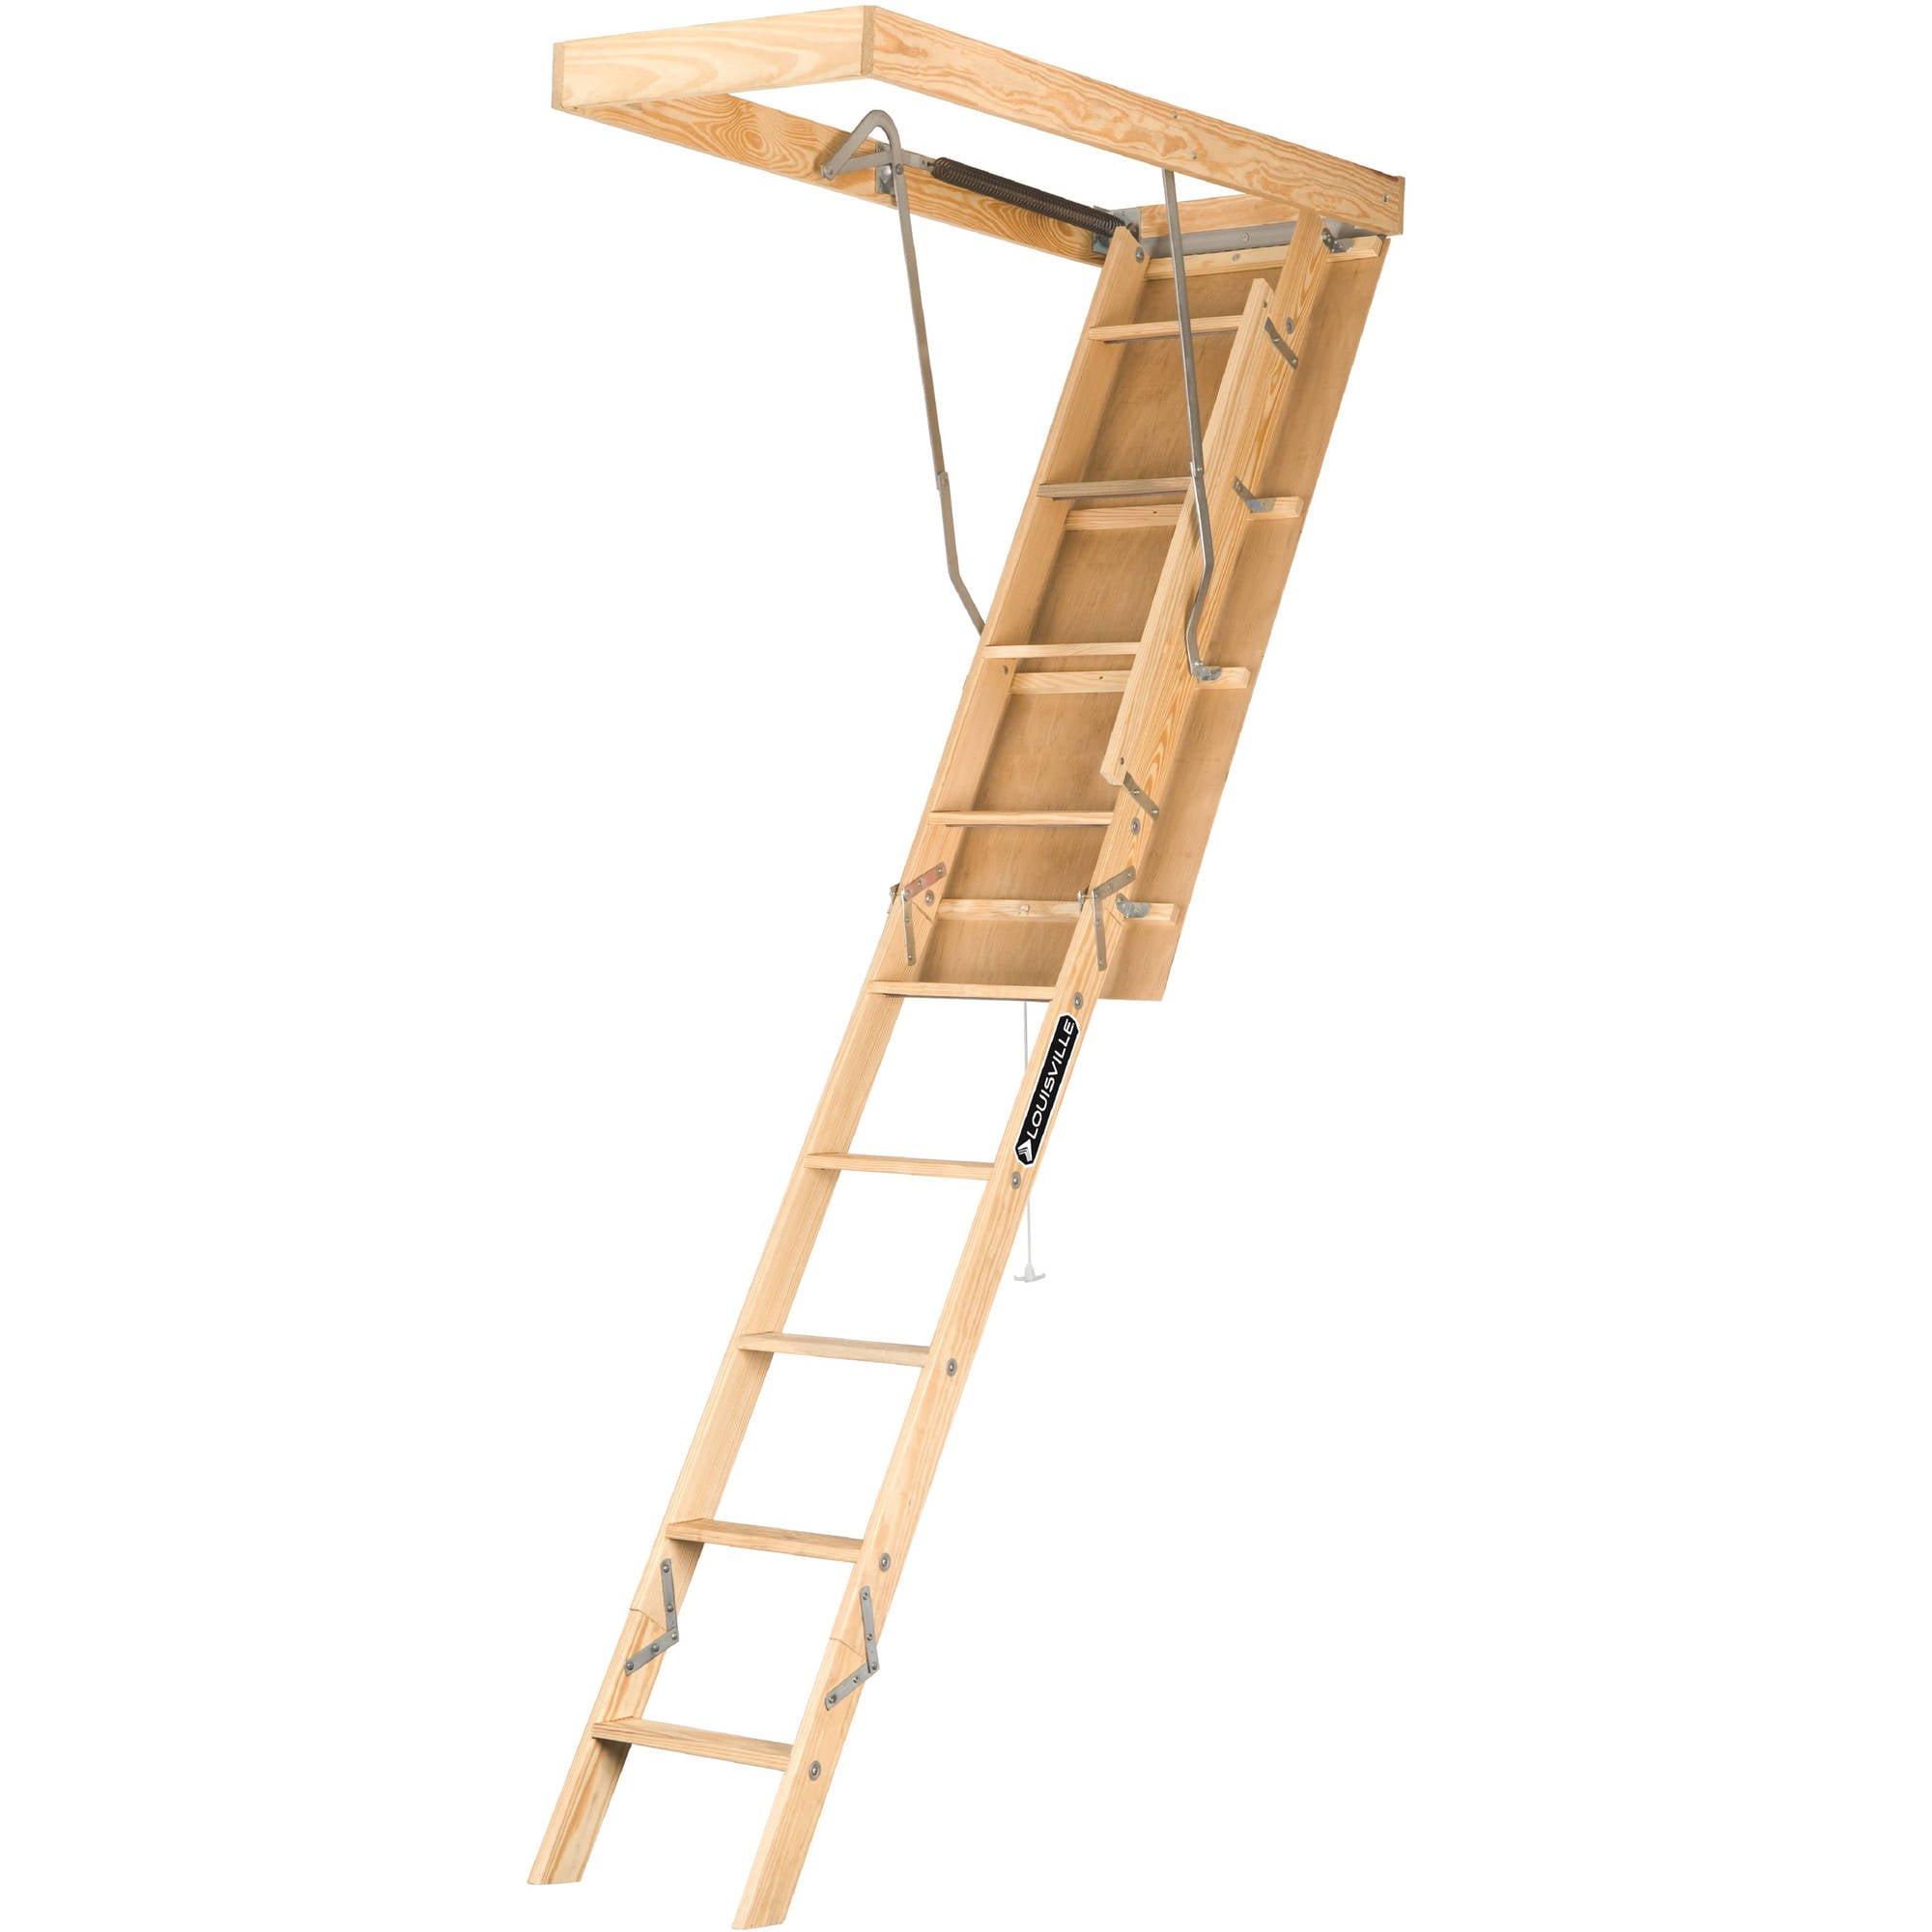 Louisville Ladder S224P 7 ft. 8 ft. 9 in. Wood Attic Ladder, Type I, 250 lbs Load Capacity by Louisville Ladder